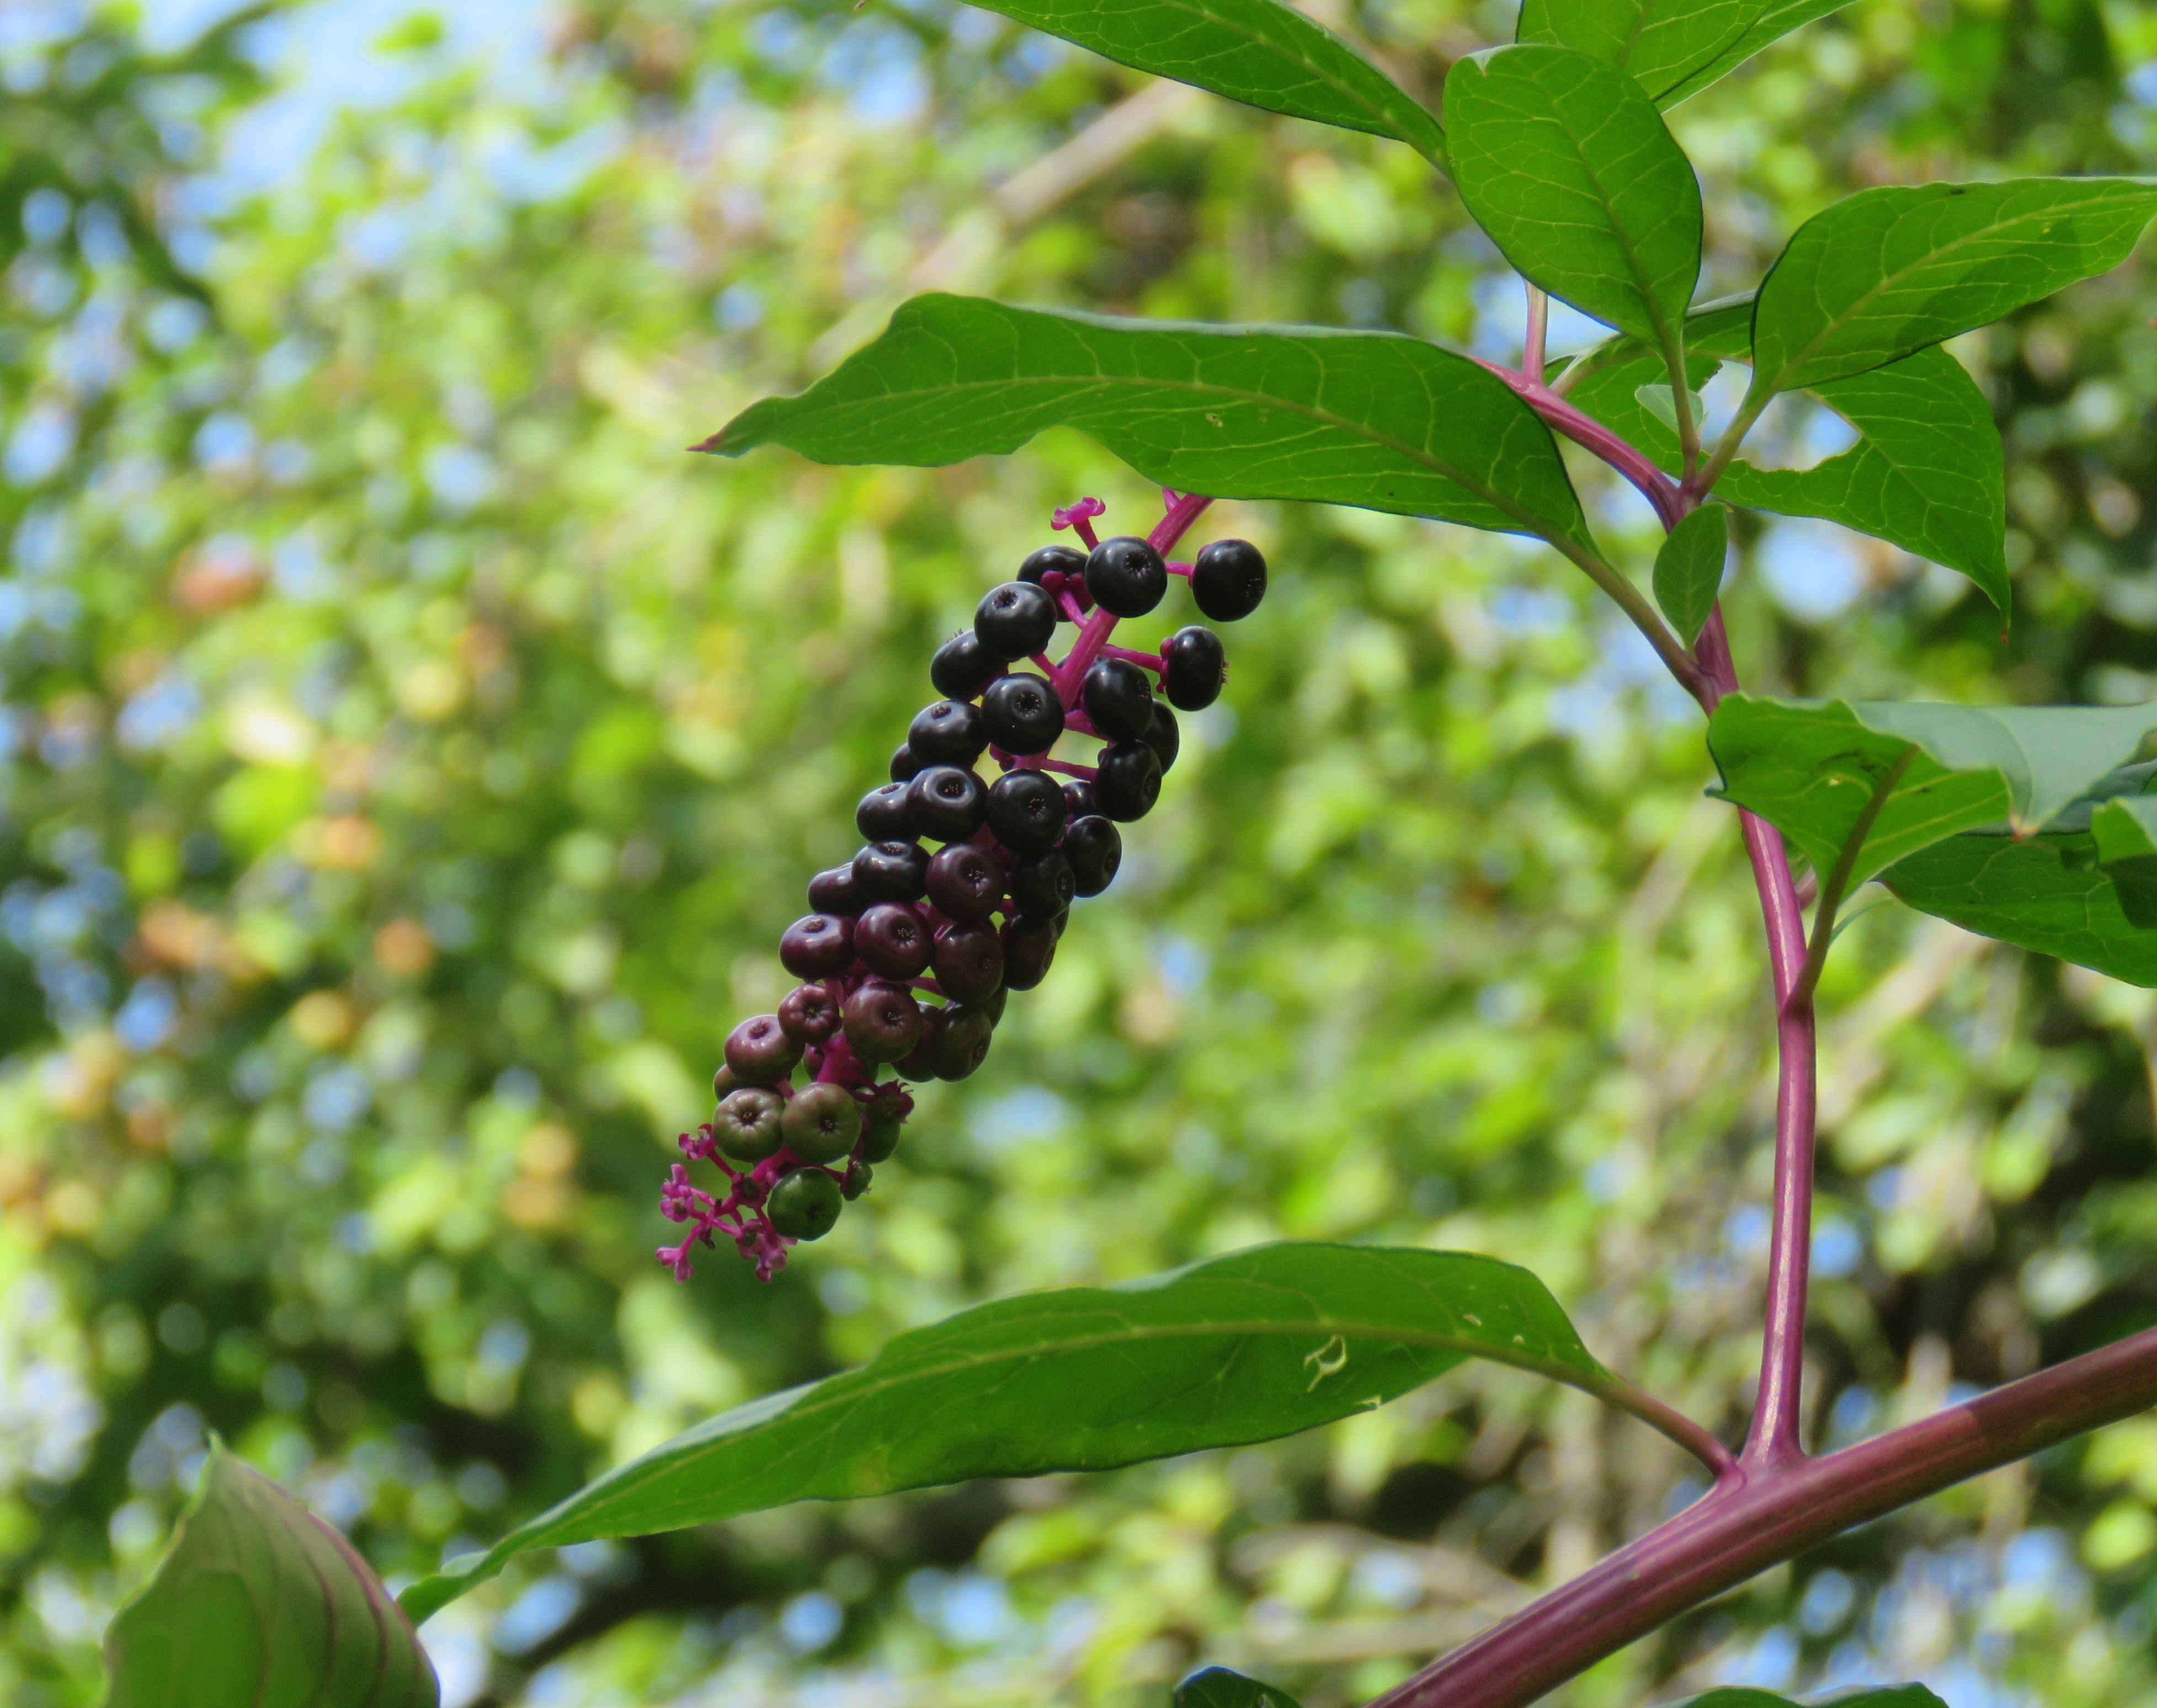 A photograph of poisonous pokeweed. Its berries and dark purple with a dark pink stem.